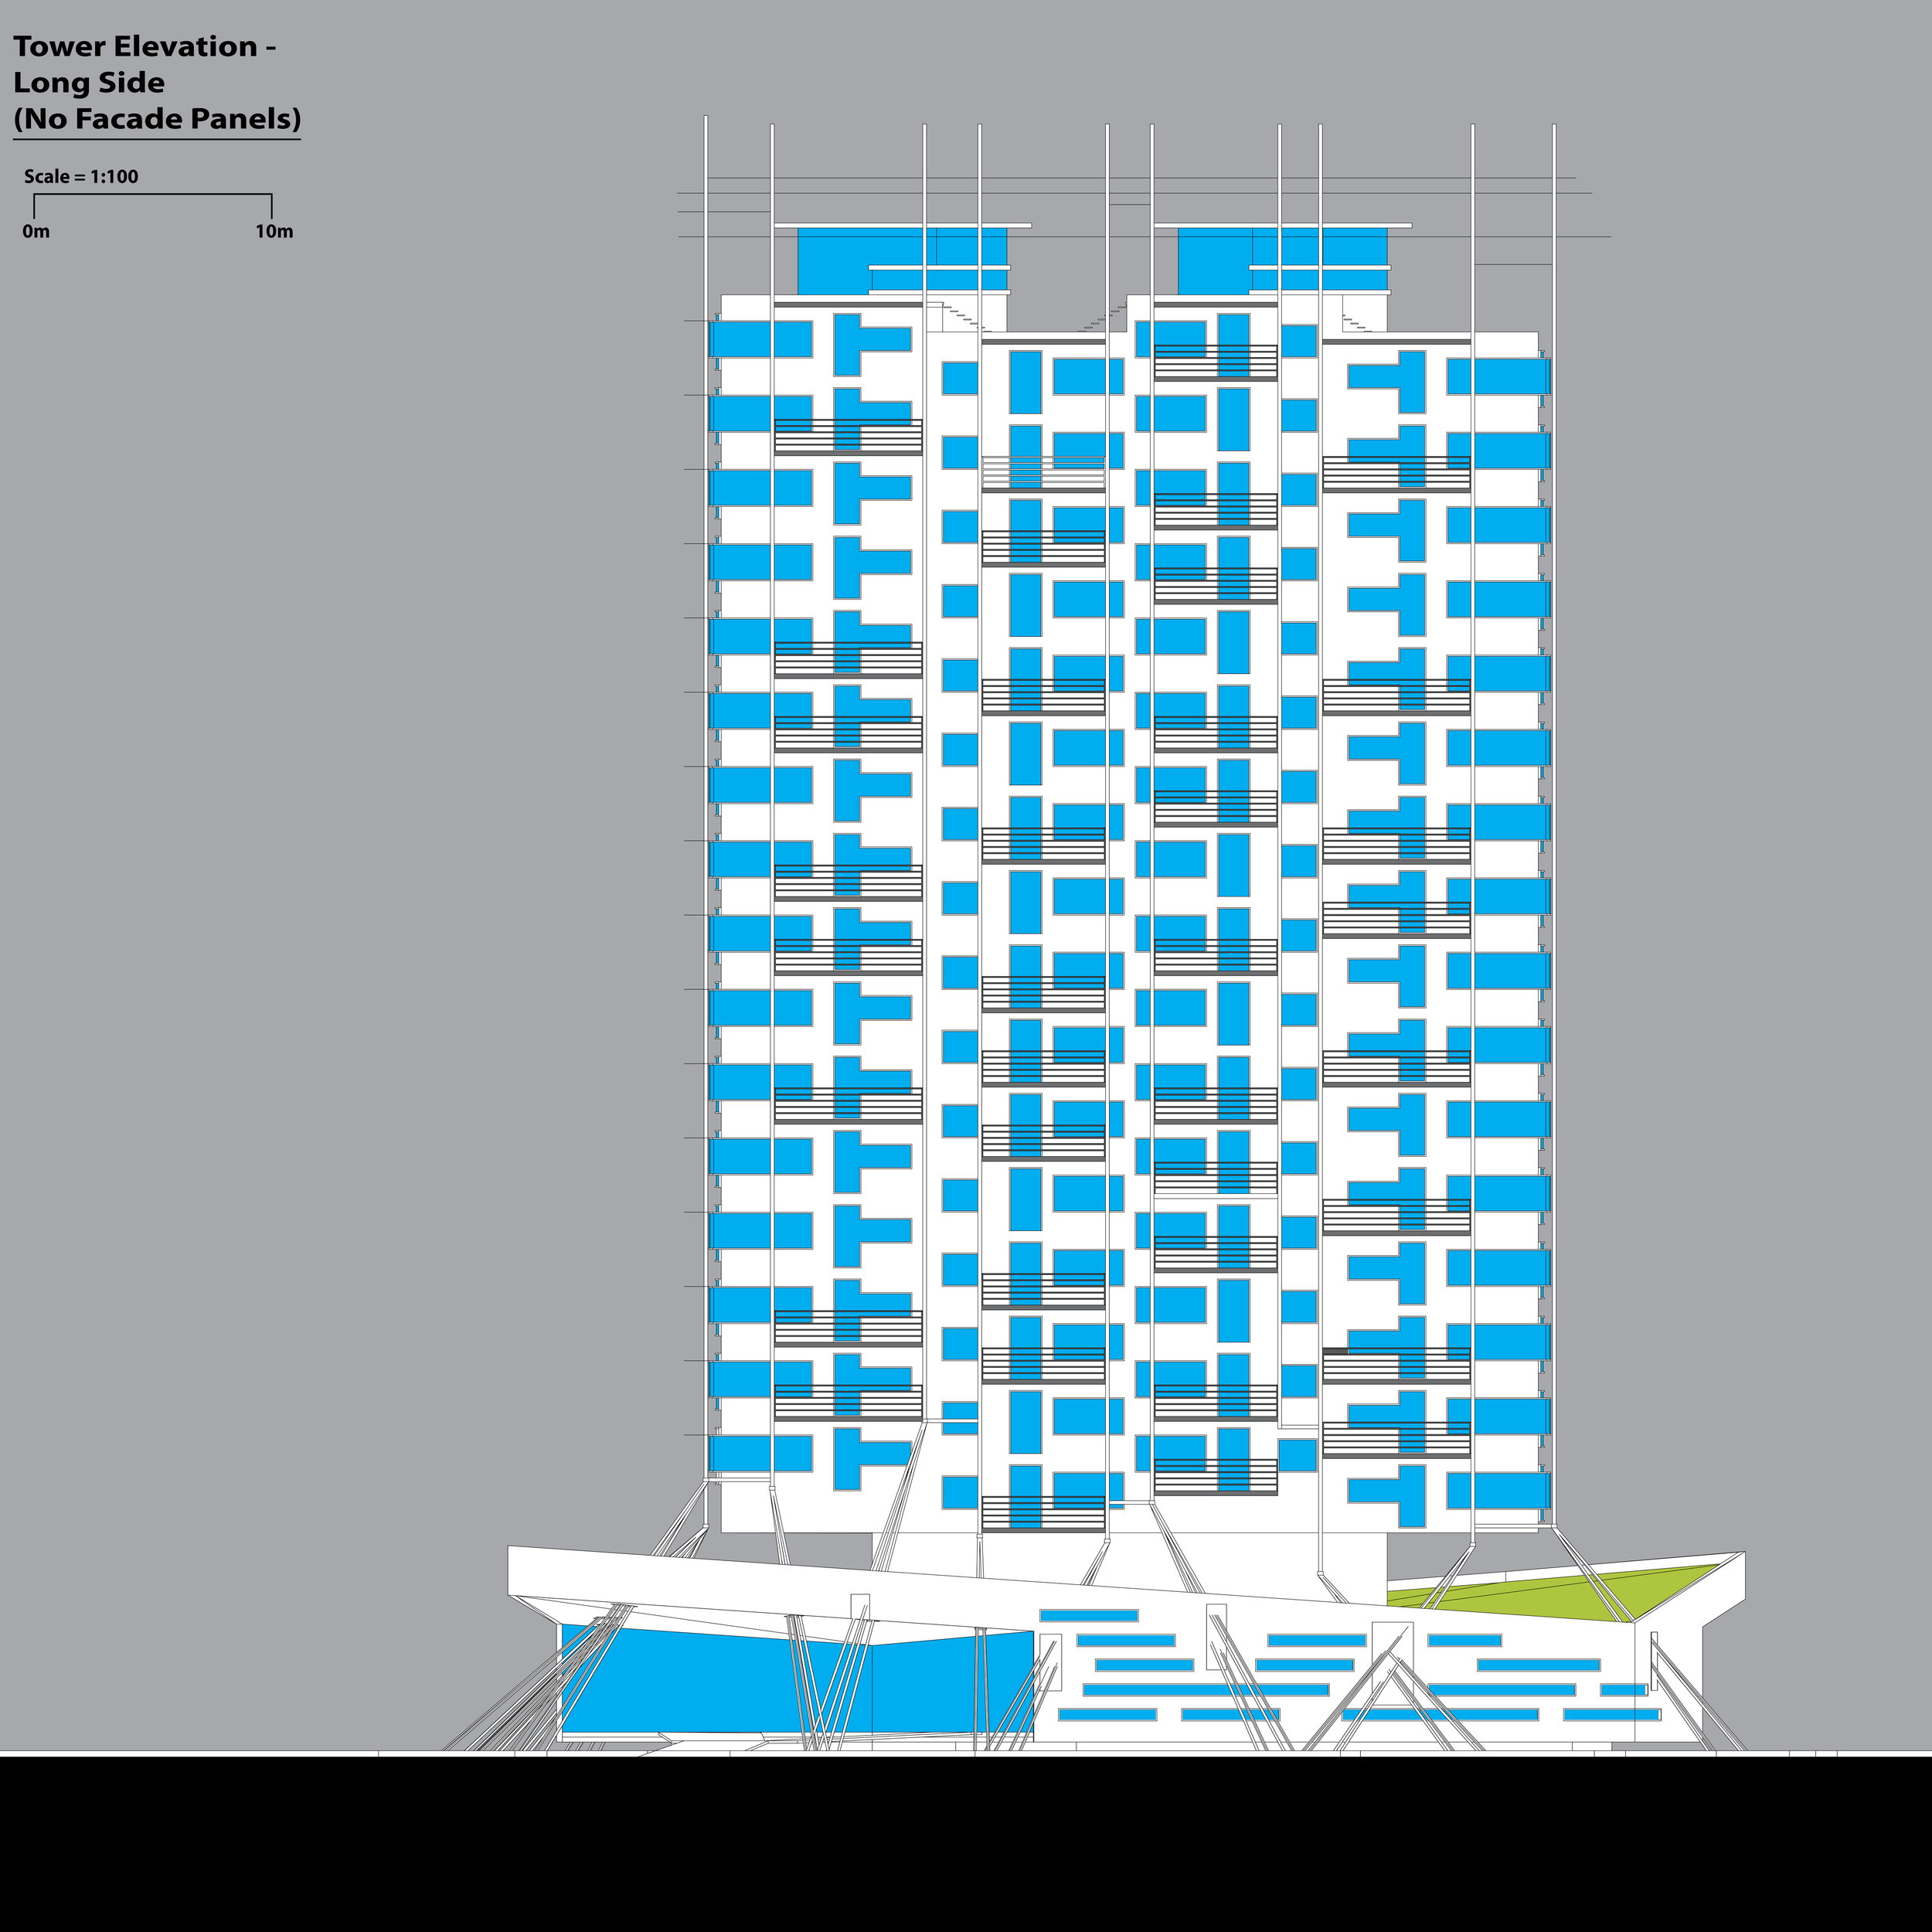 17.Tower_Elevation-Long-NF-15_0505.jpg